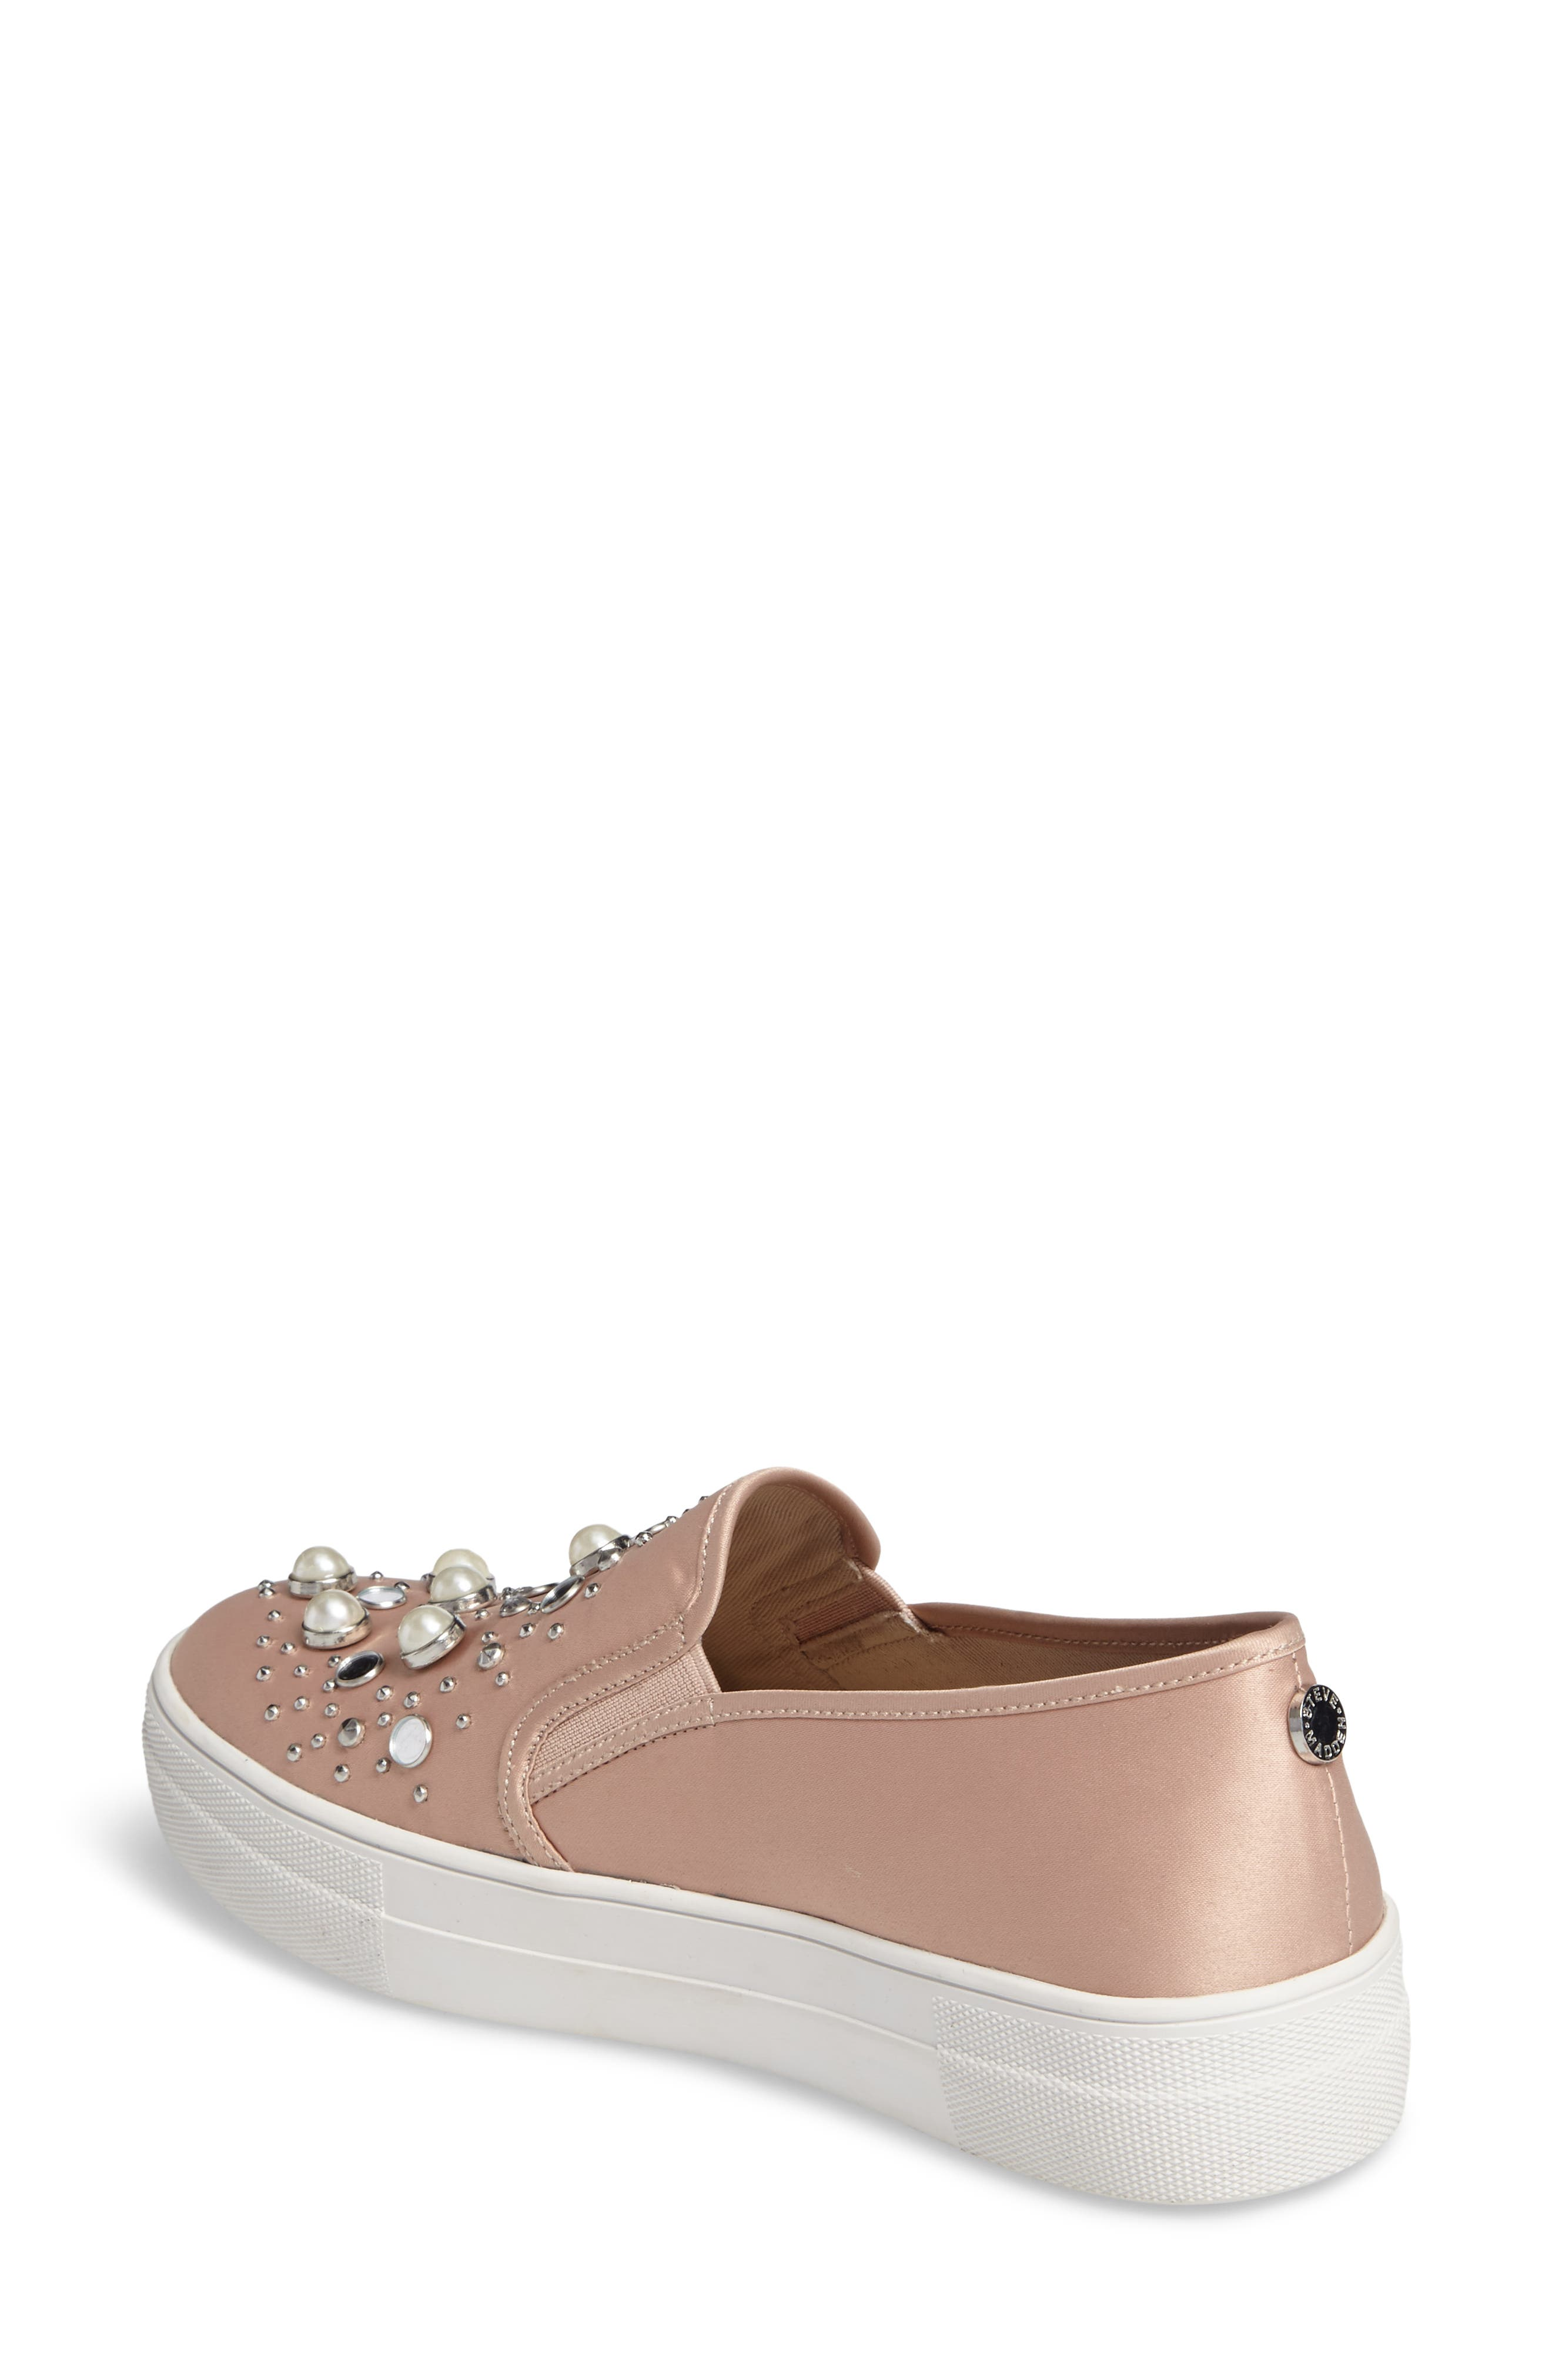 Glade Embellished Slip-On Sneaker,                             Alternate thumbnail 2, color,                             Blush Satin